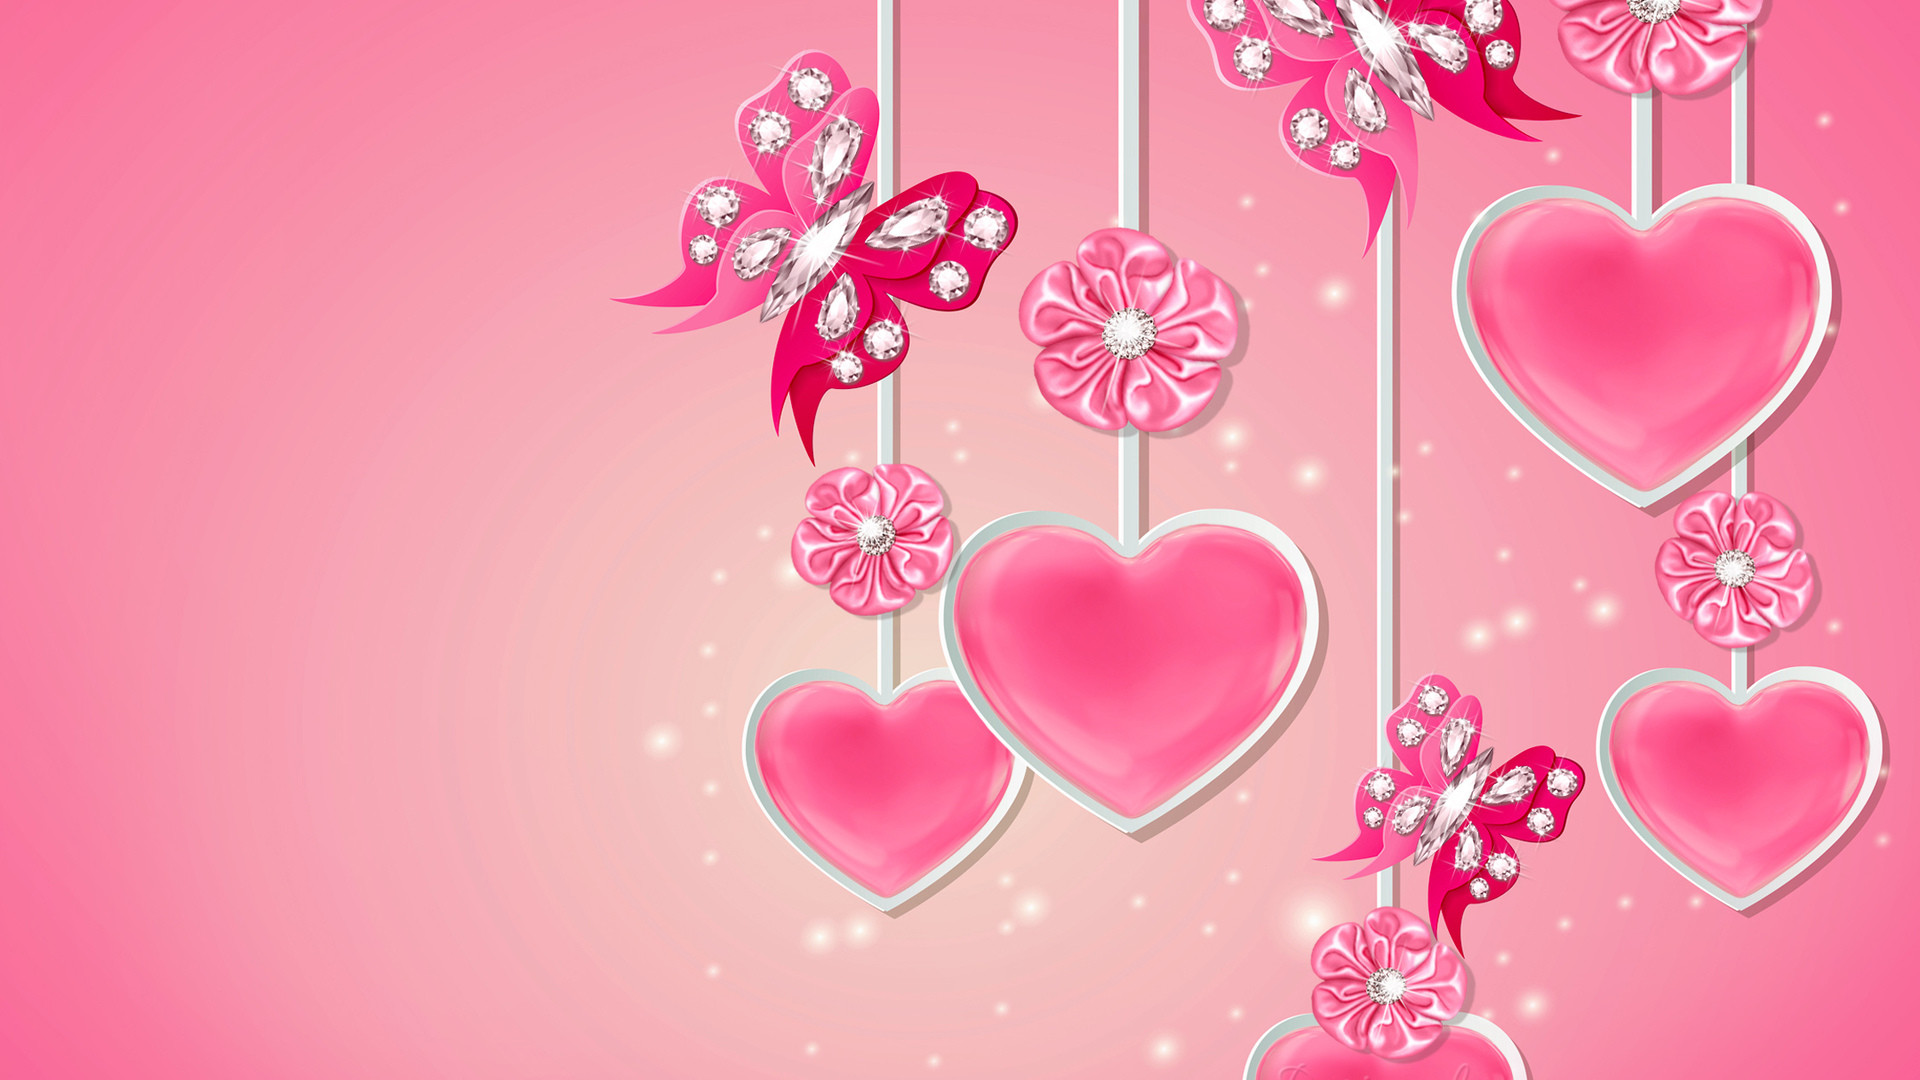 Res: 1920x1080, Pink hearts with diamonds